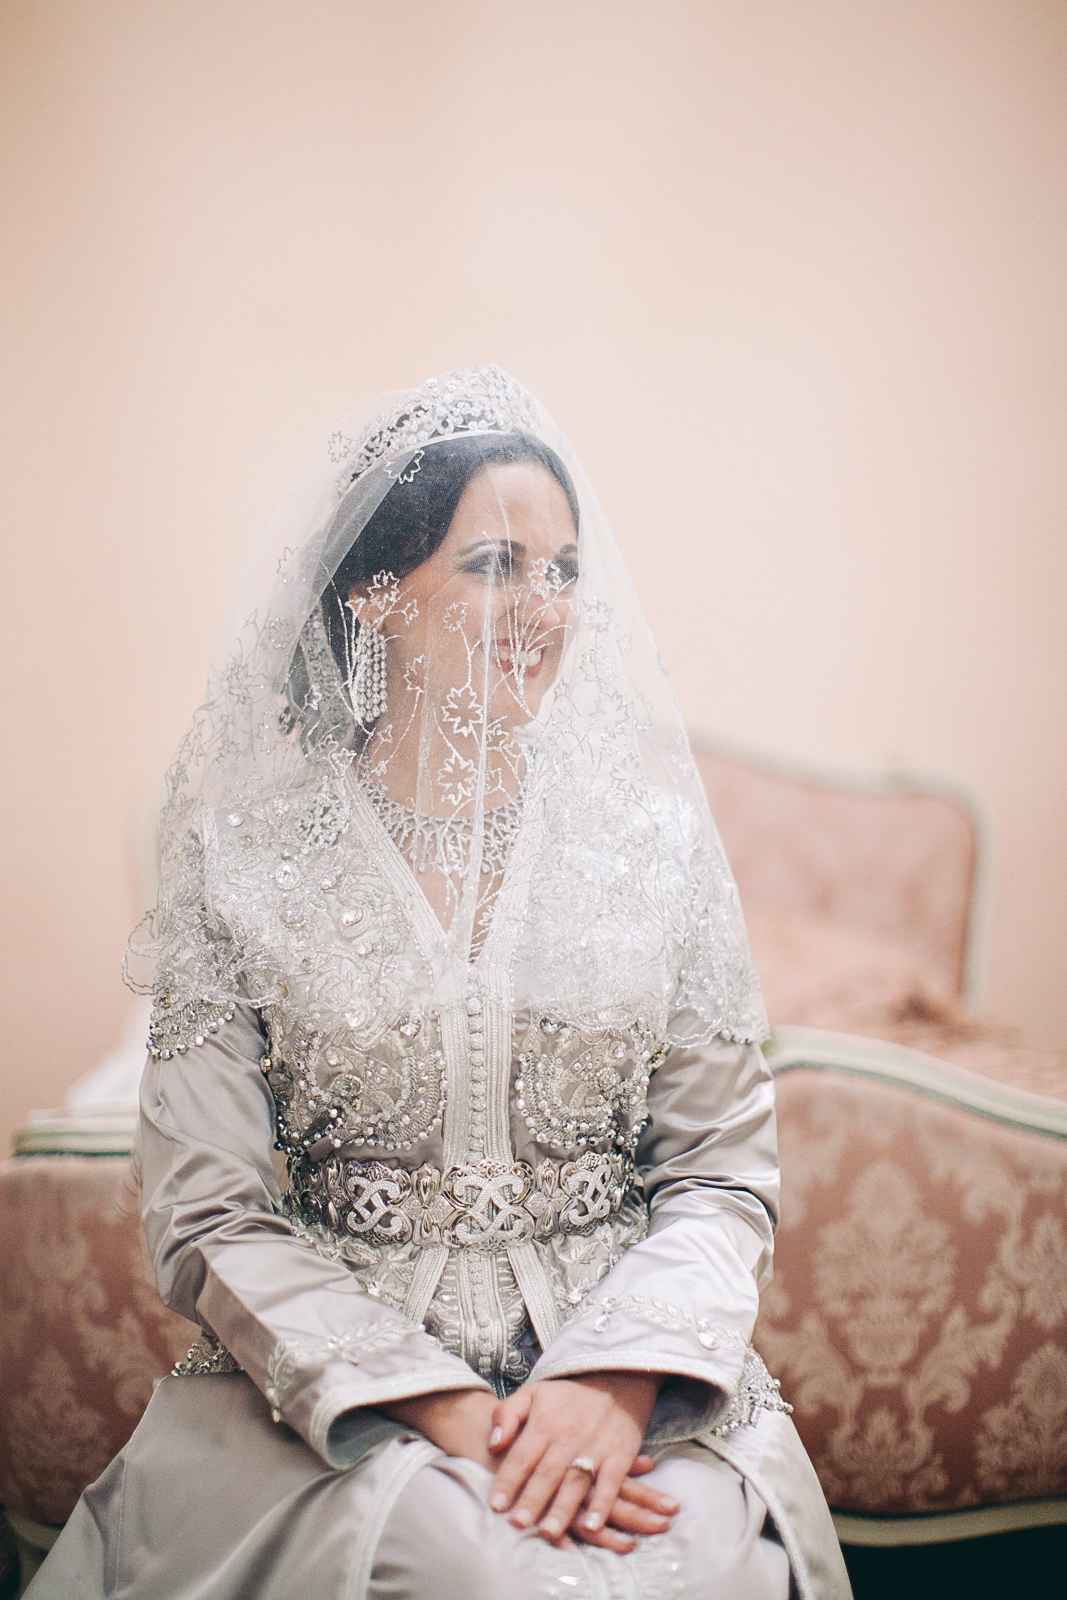 traditional_moroccan_wedding_photographry_casablanca_morocco_houda_vivek_ebony_siovhan_bokeh_photography_048.jpg